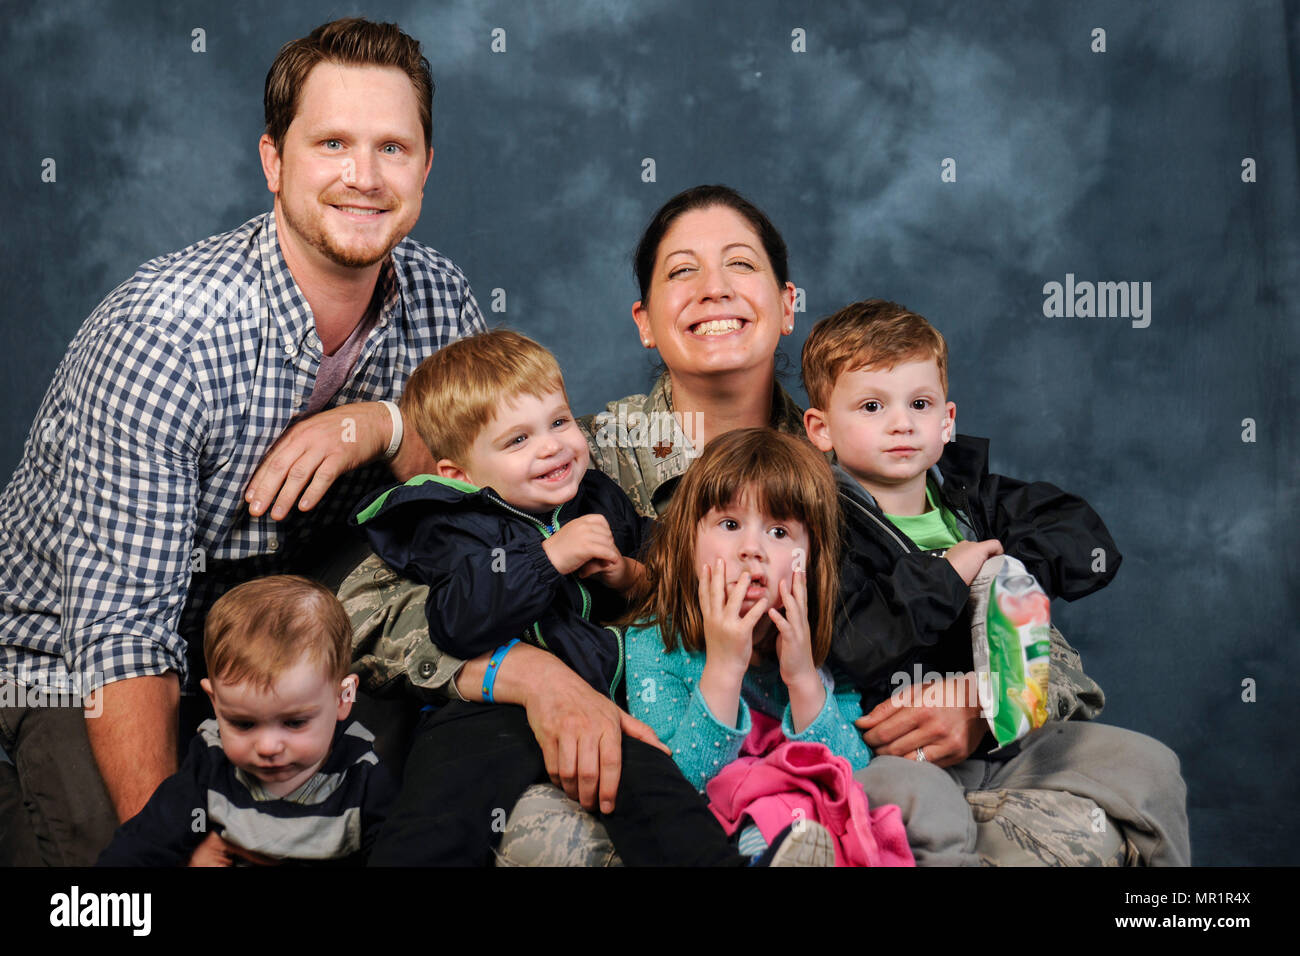 The Christi family poses for a photo at Joint Base Andrews, Md., April 27, 2017. Michael Christi, far right, son of Jeff Christi and Maj. Rebecca Christi, 779th Medical Group pediatrician, has autism spectrum disorder. The Air Force provides Michael with health and educational services, including Exceptional Family Member Program and Extended Care Health Options, which in turn provide therapies such as applied behavior analogy, speech therapy, and occupational therapy. April is also Autism Awareness Month, which is meant to increase understanding and acceptance of autism. (U.S. Air Force photo - Stock Image